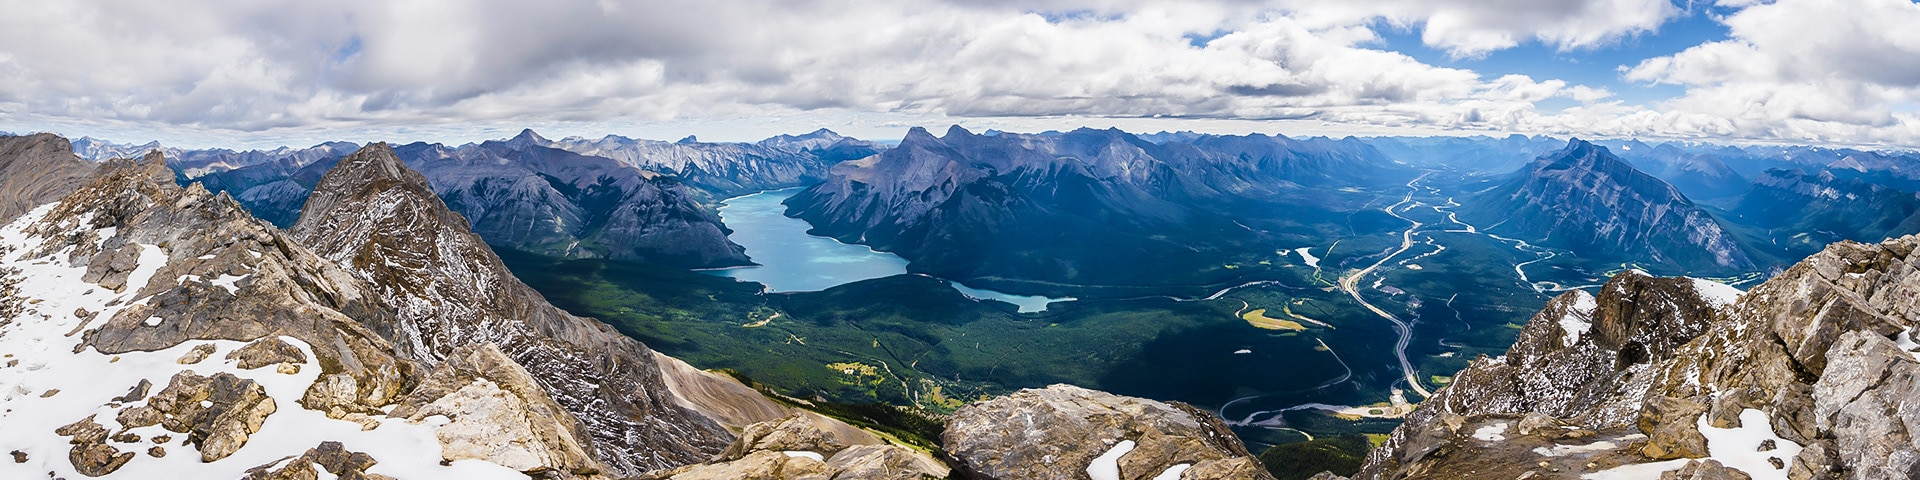 Panorama from Cascade Mountain scramble in Banff National Park